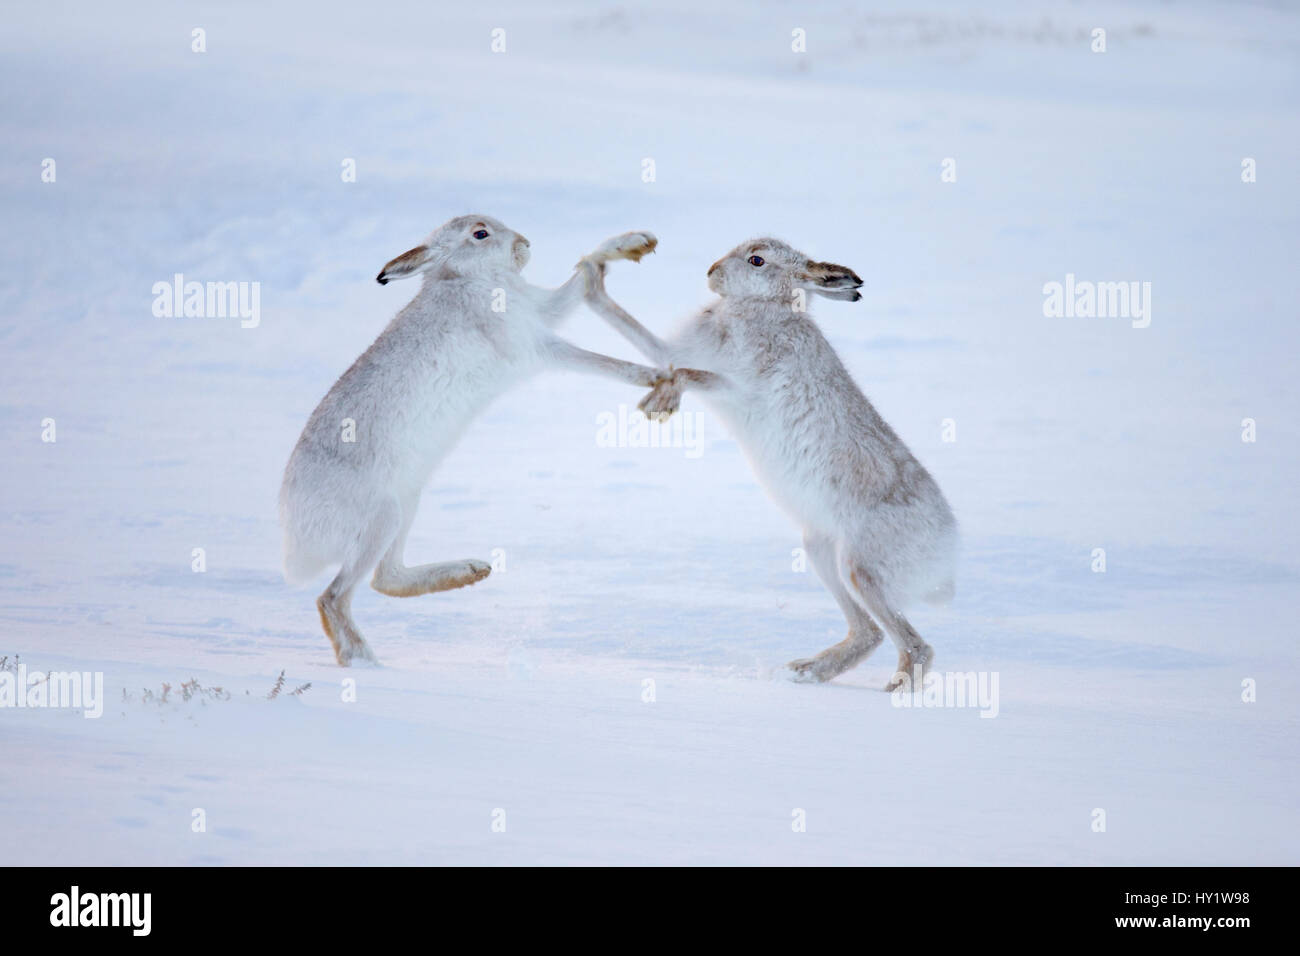 Mountain hares (Lepus timidus) boxing in snow, Scotland, UK, December. - Stock Image